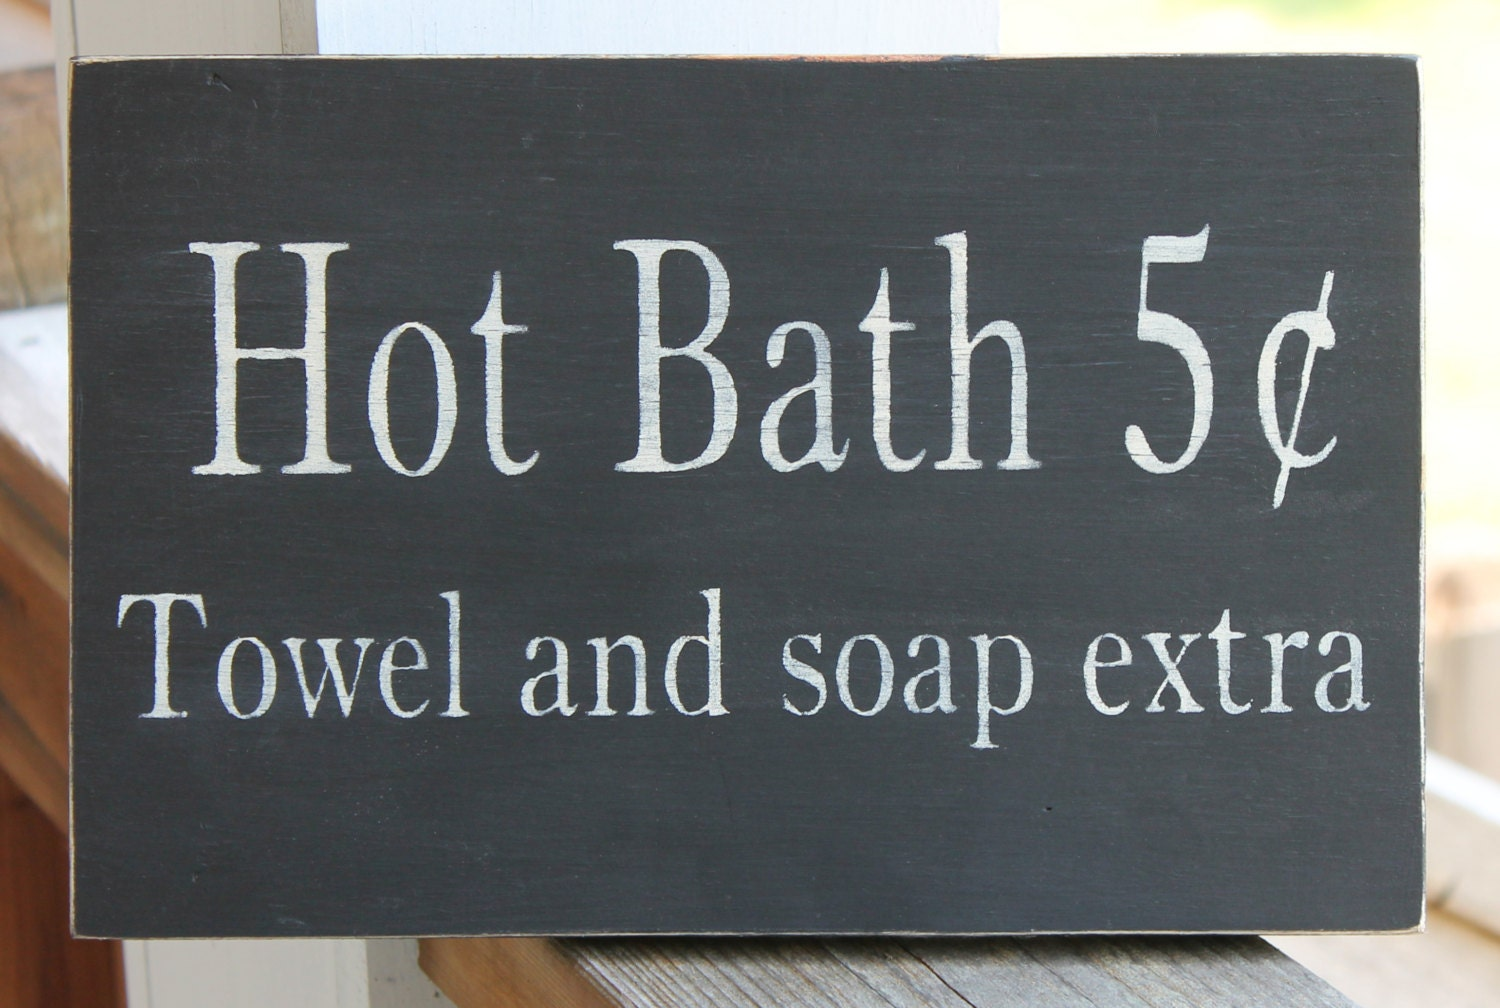 Bathroom wood sign hot bath 5 cents towel and by for Bathroom quote signs